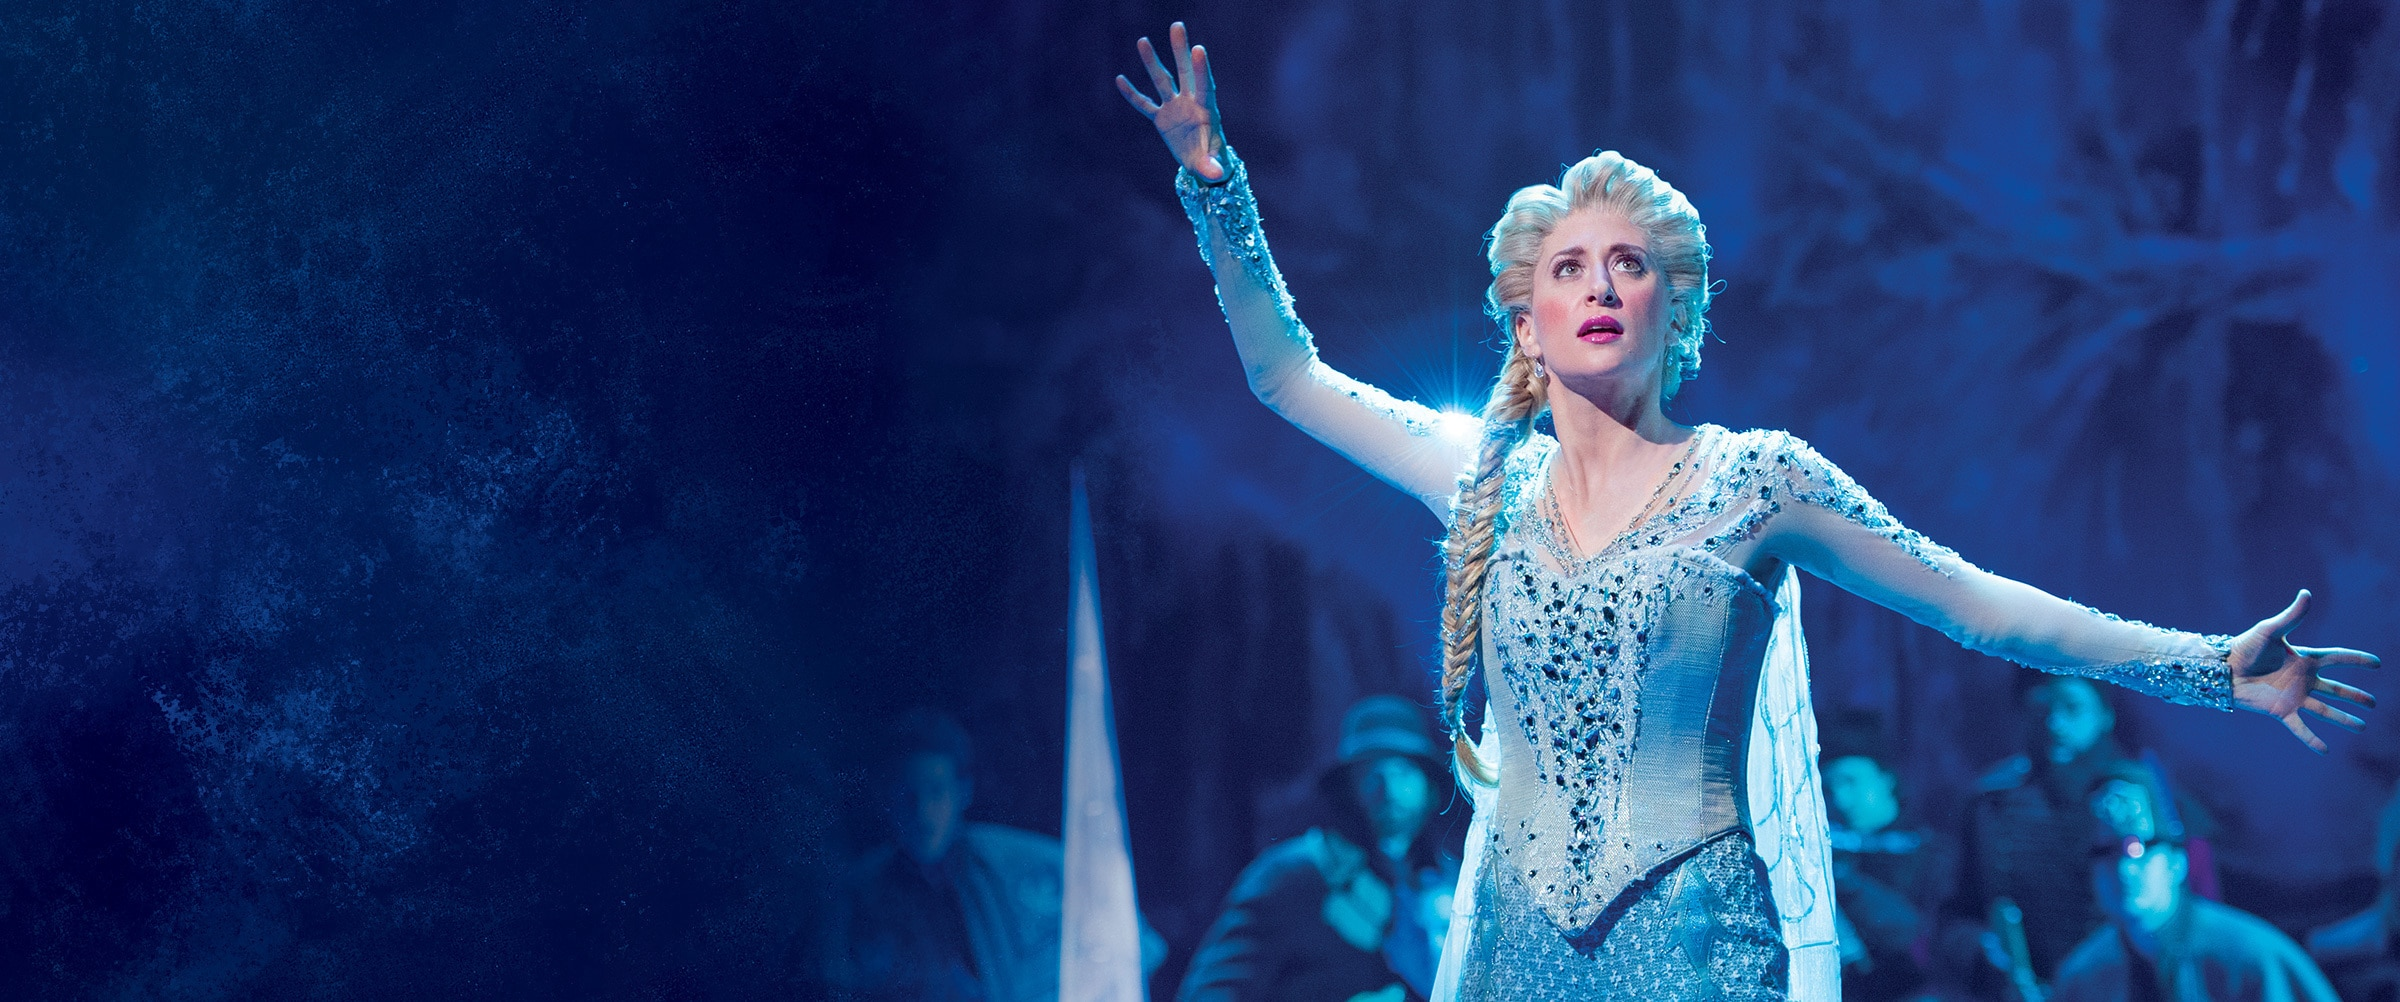 Frozen The Musical | Elsa | hero